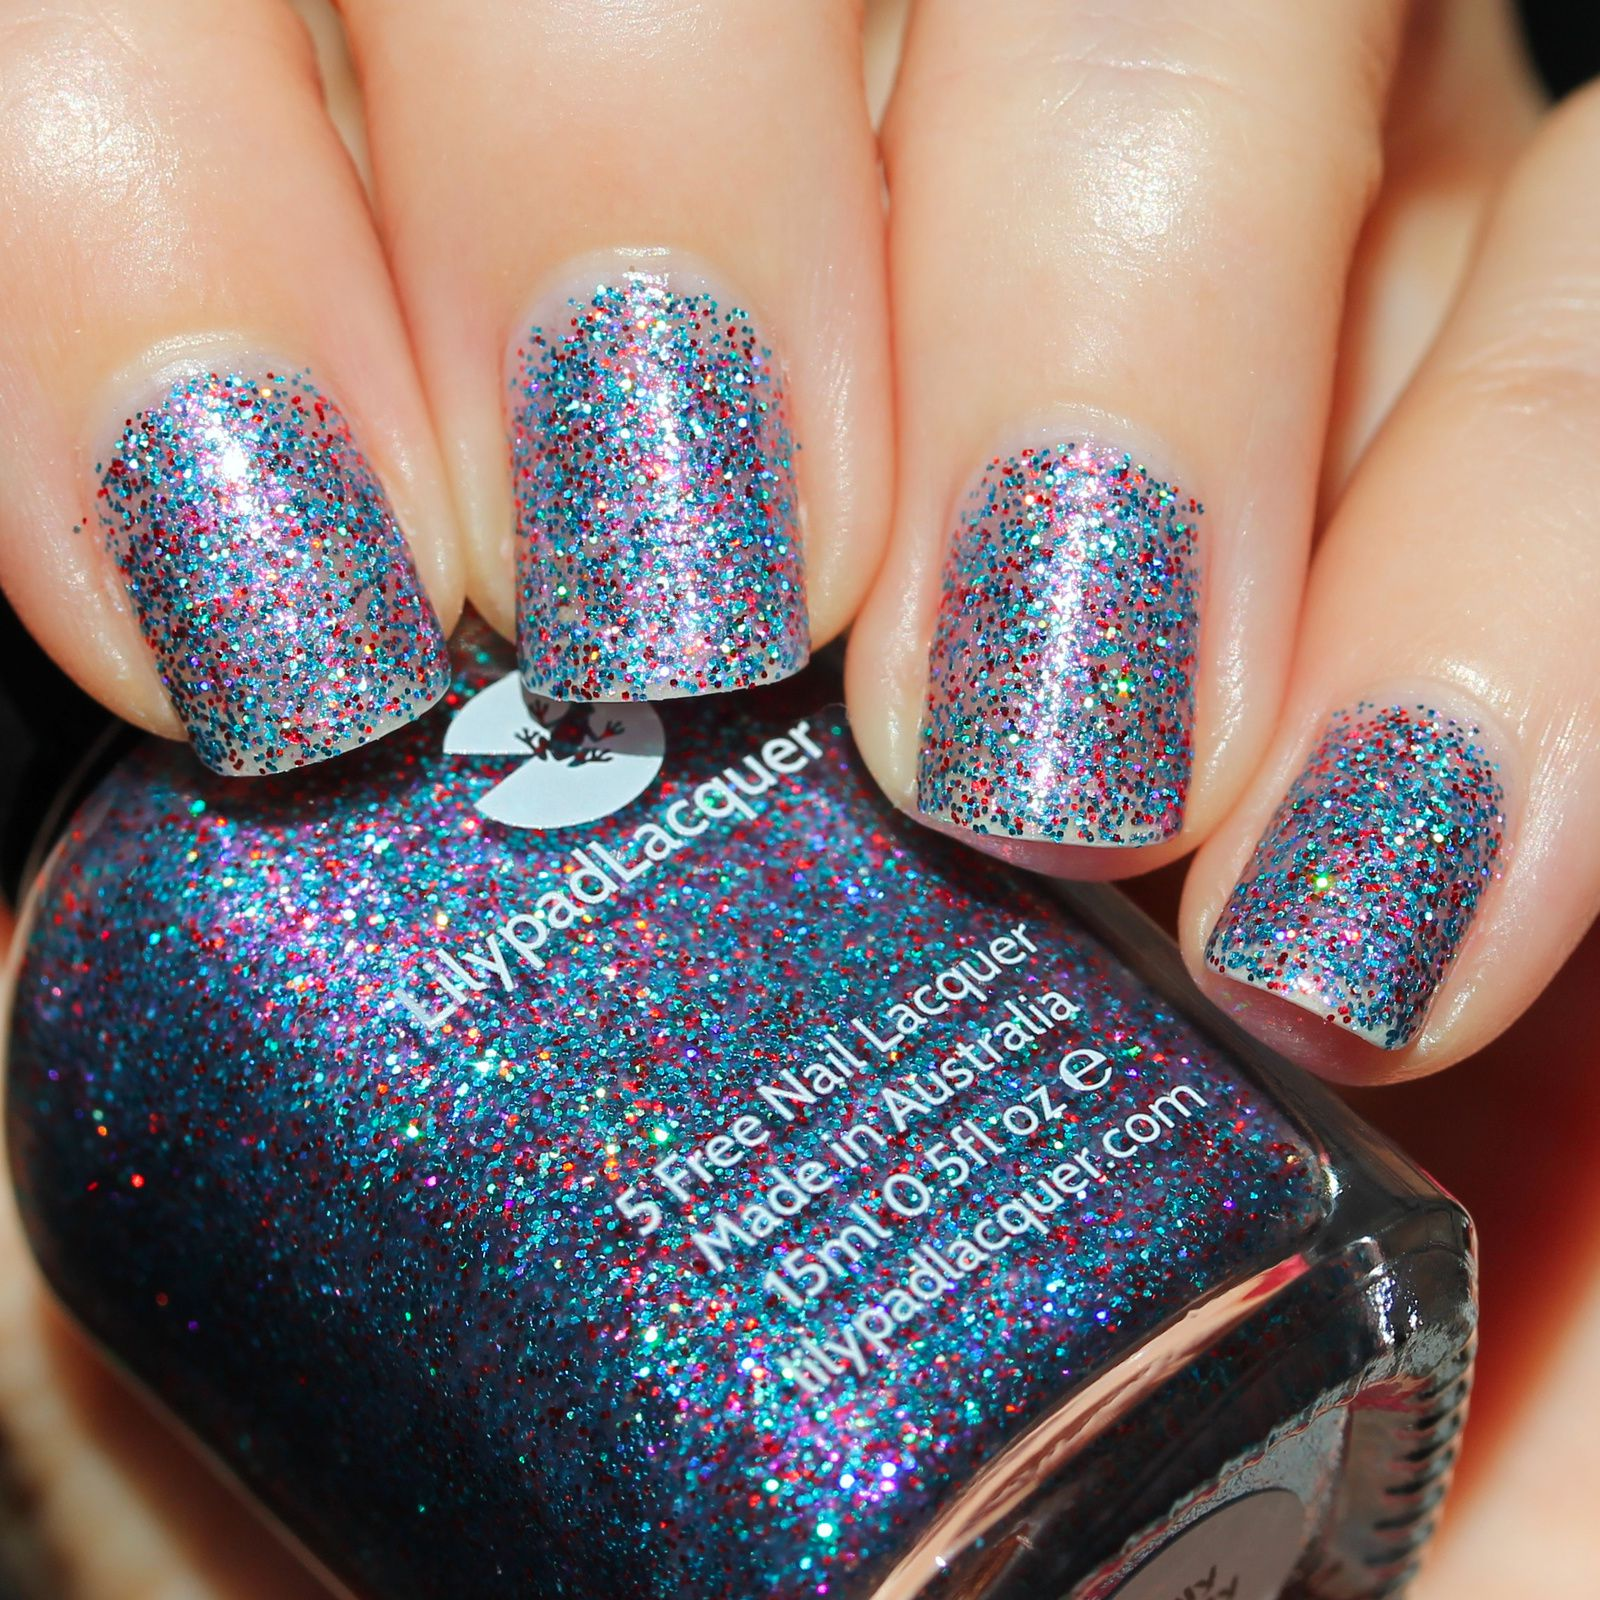 Lilypad Lacquer Be Jolly by Golly (3 coats, no top coat)